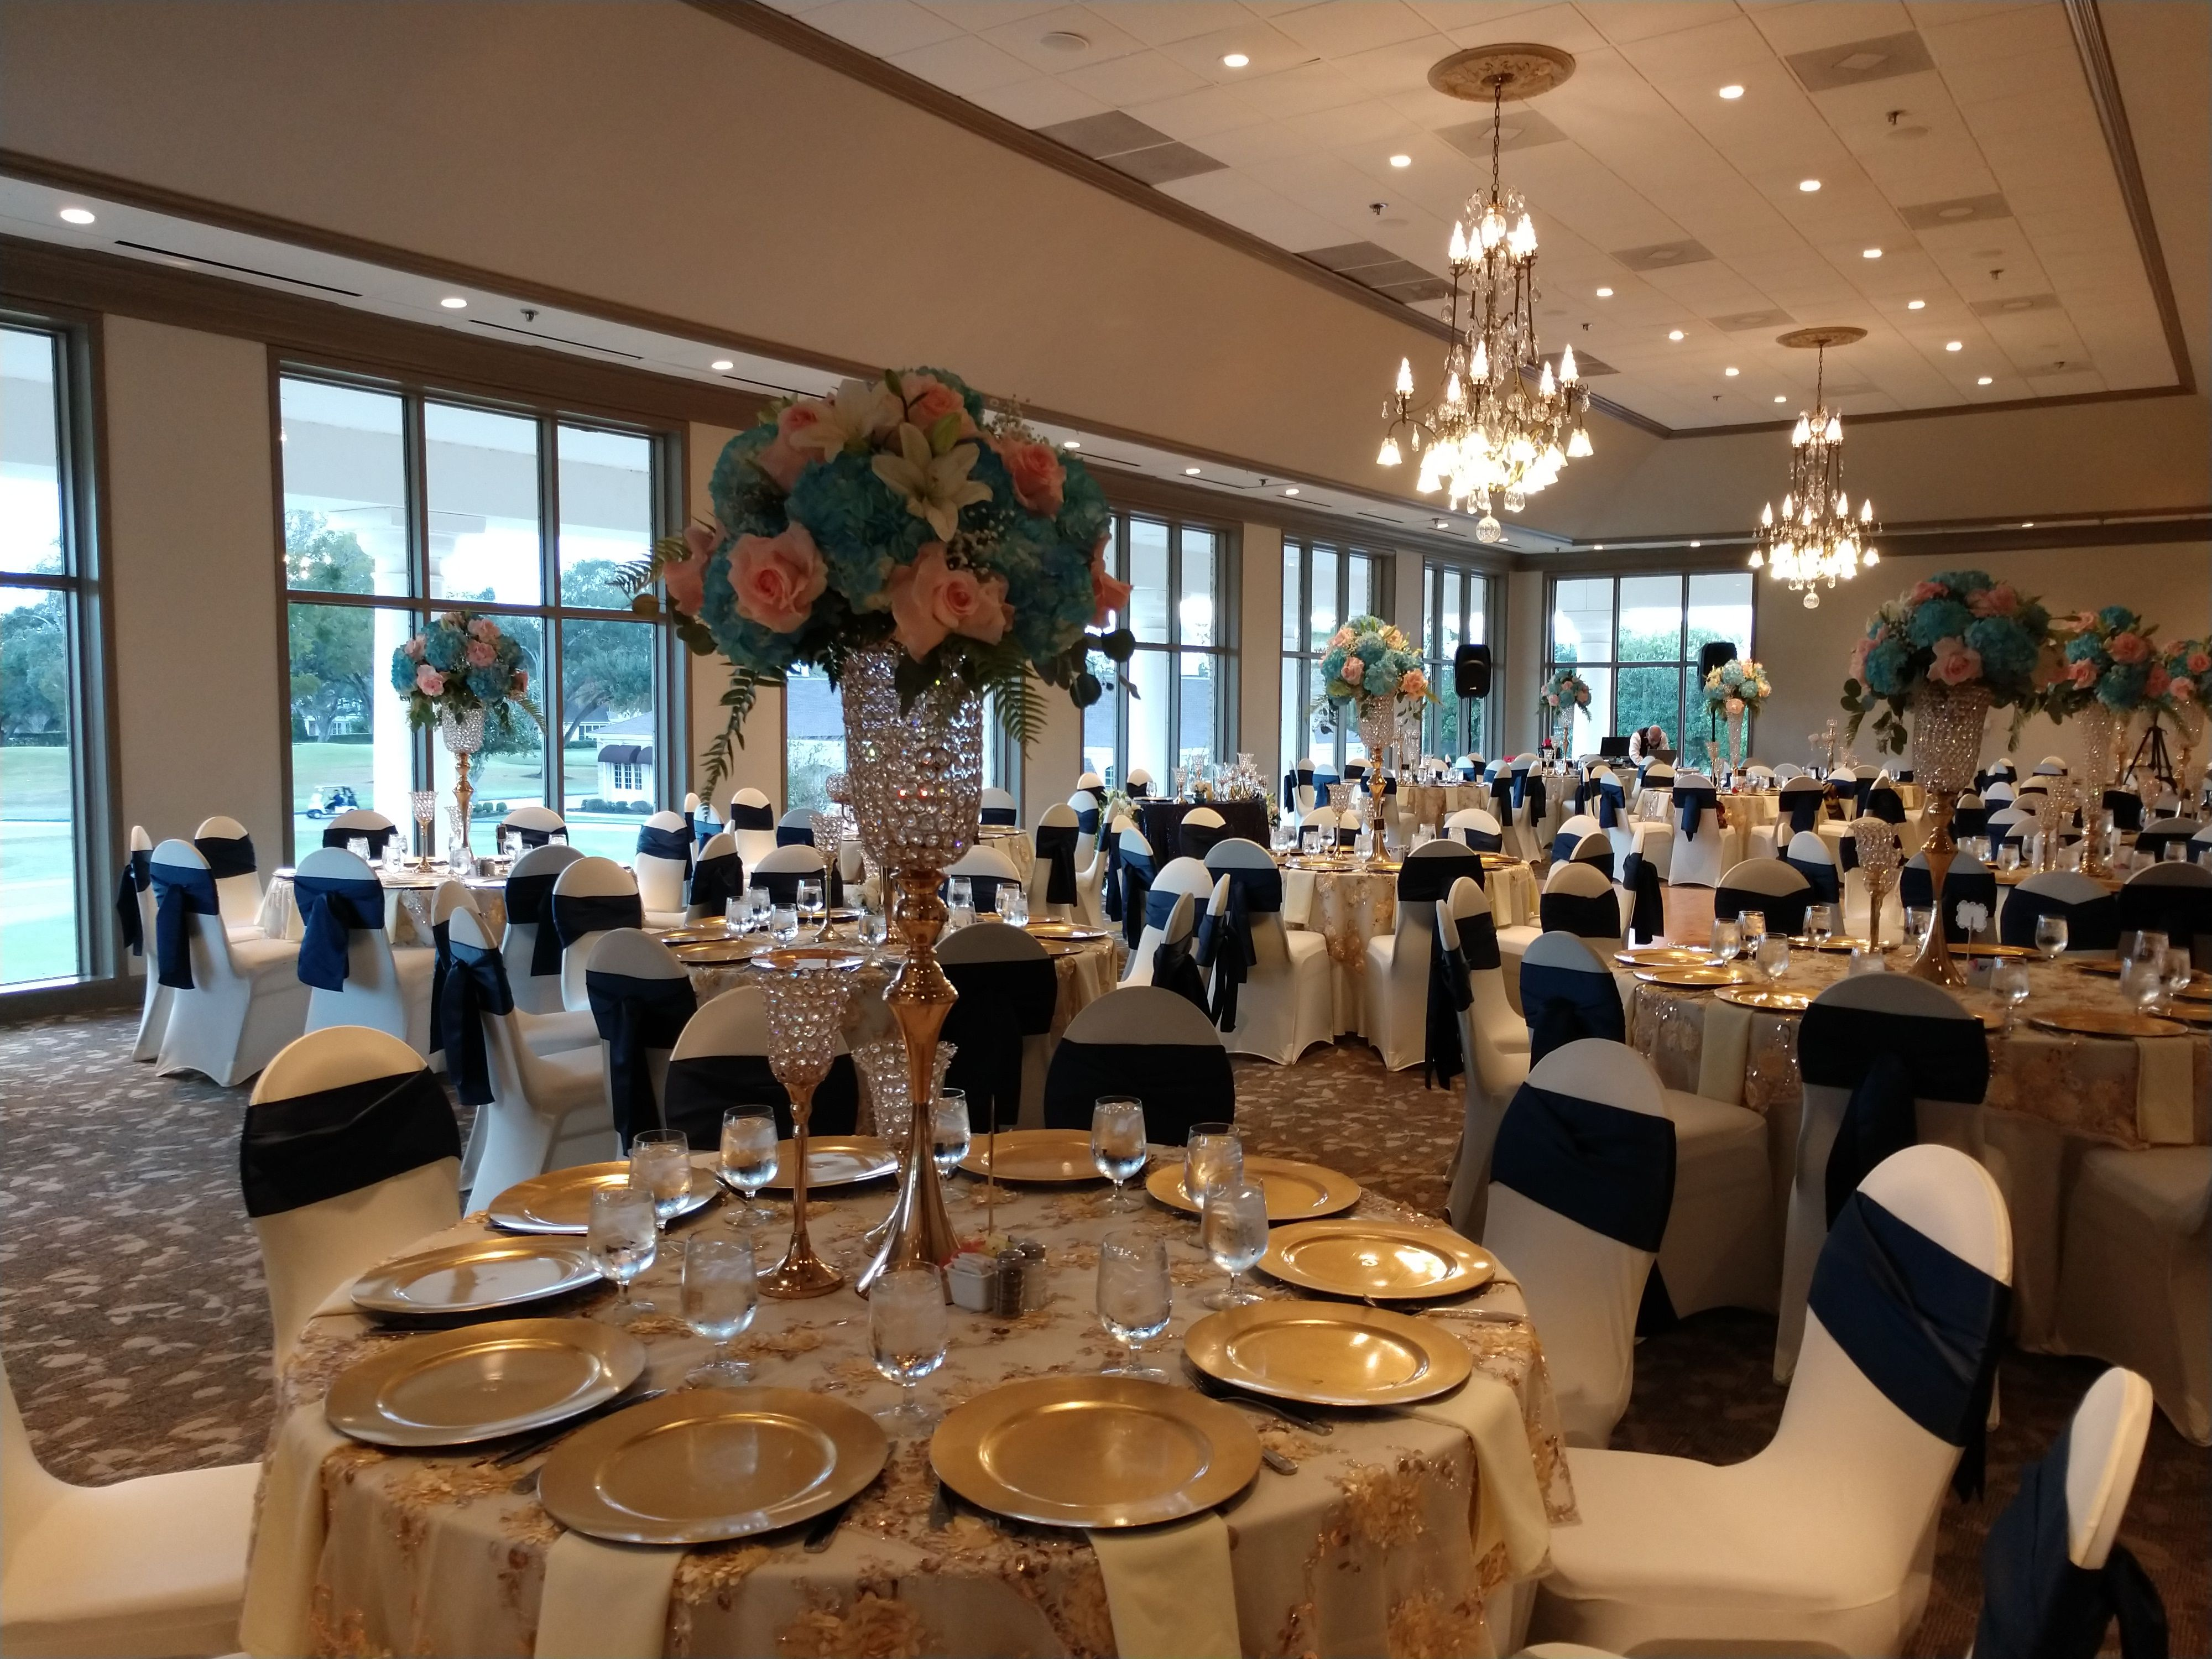 Superieur Wedding Reception With Ivory Chair Covers, Navy Blue Chair Sashes, Gold  Charger Plates, And Tall Gold Centerpieces In The Ballroom At Sugar Creek  Country ...